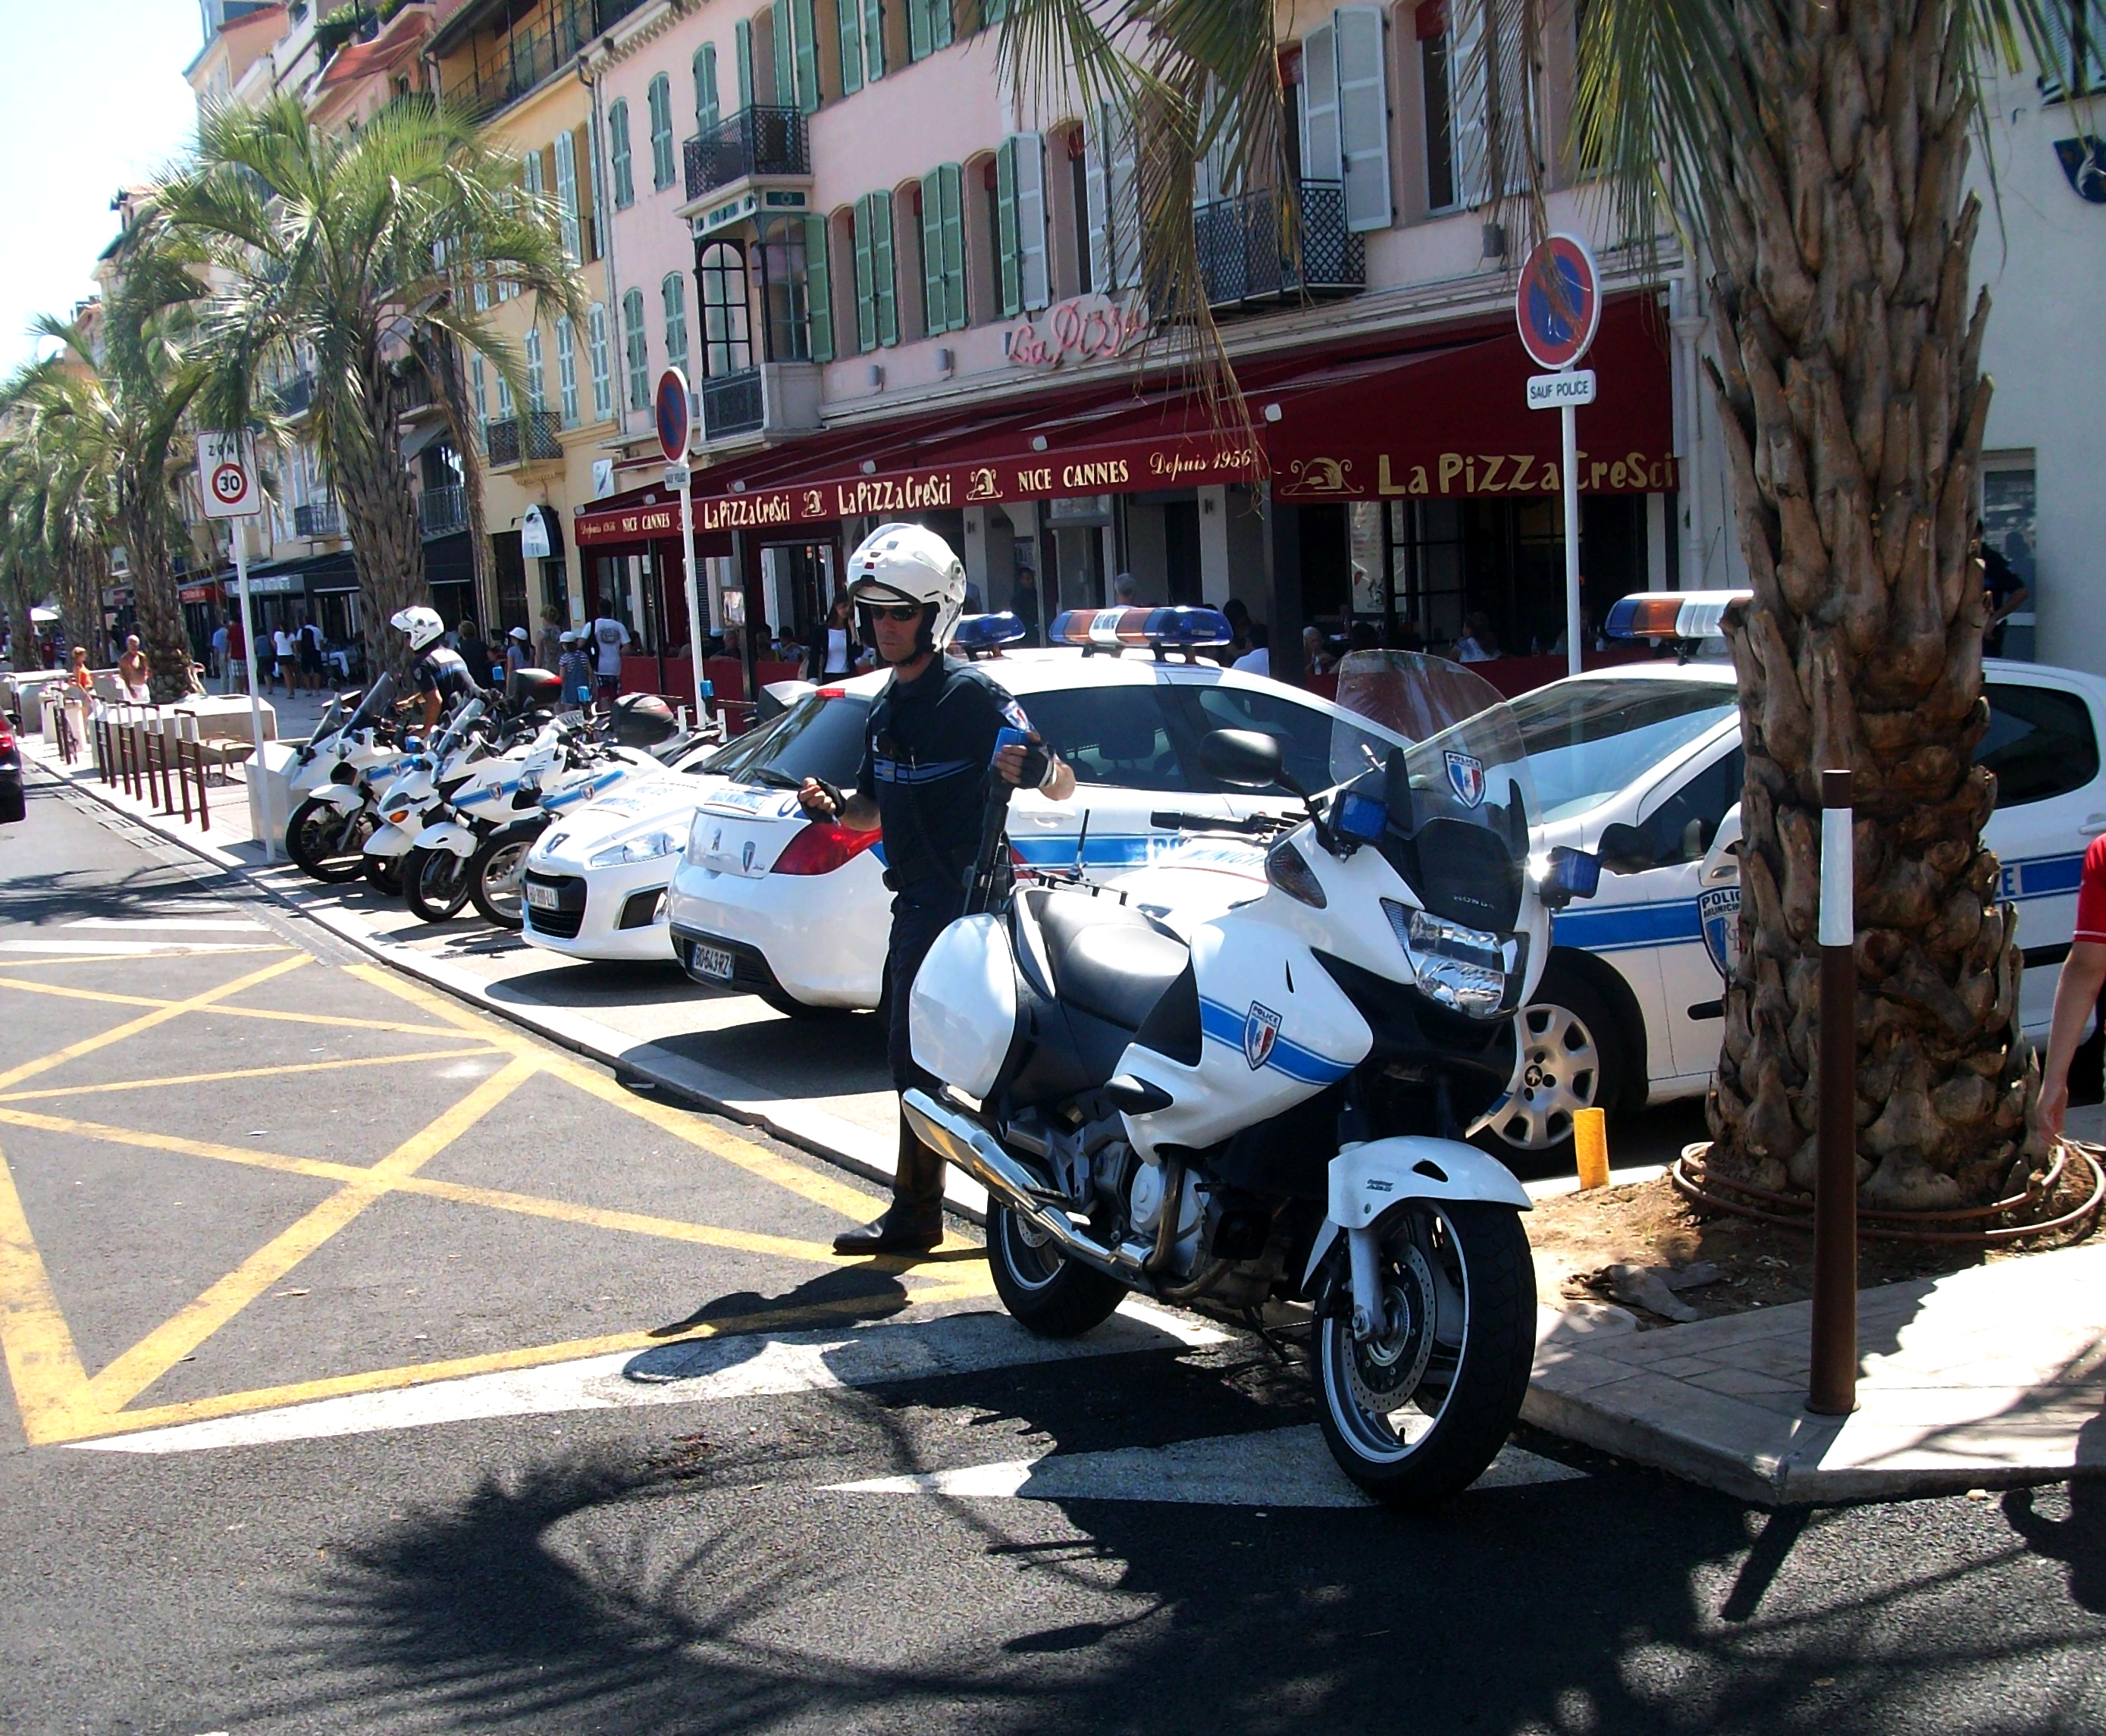 File police municipale cannes moto jpg wikimedia commons for Police cannes